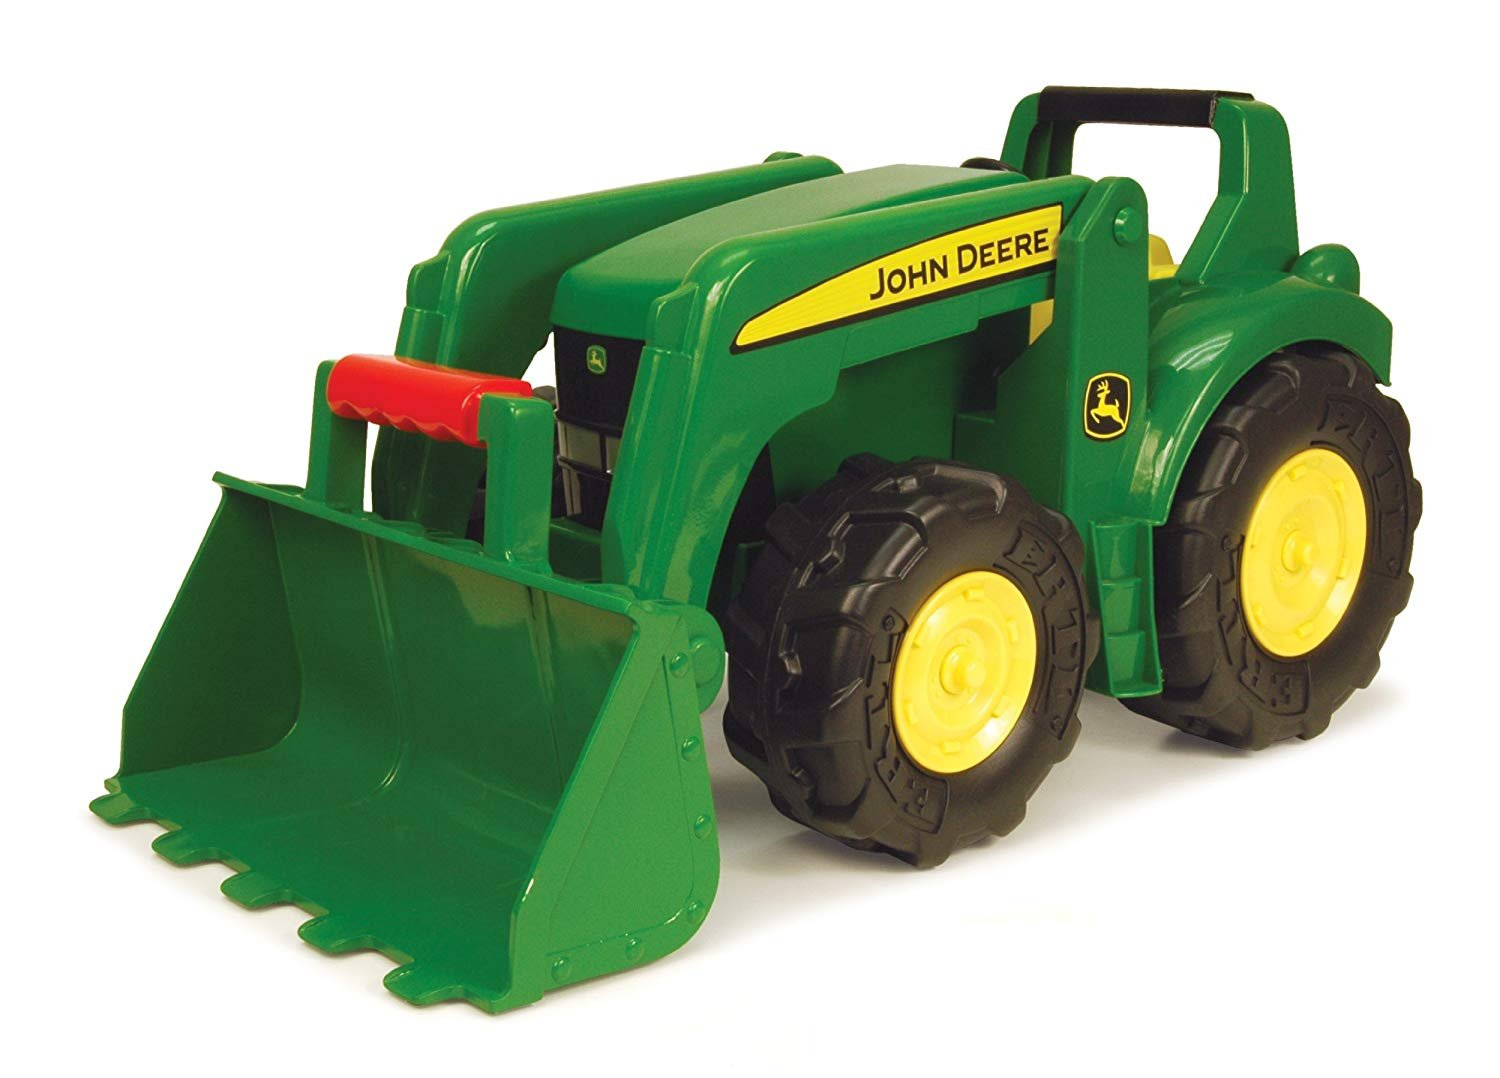 John Deere Big Scoop 21 inch Tractor